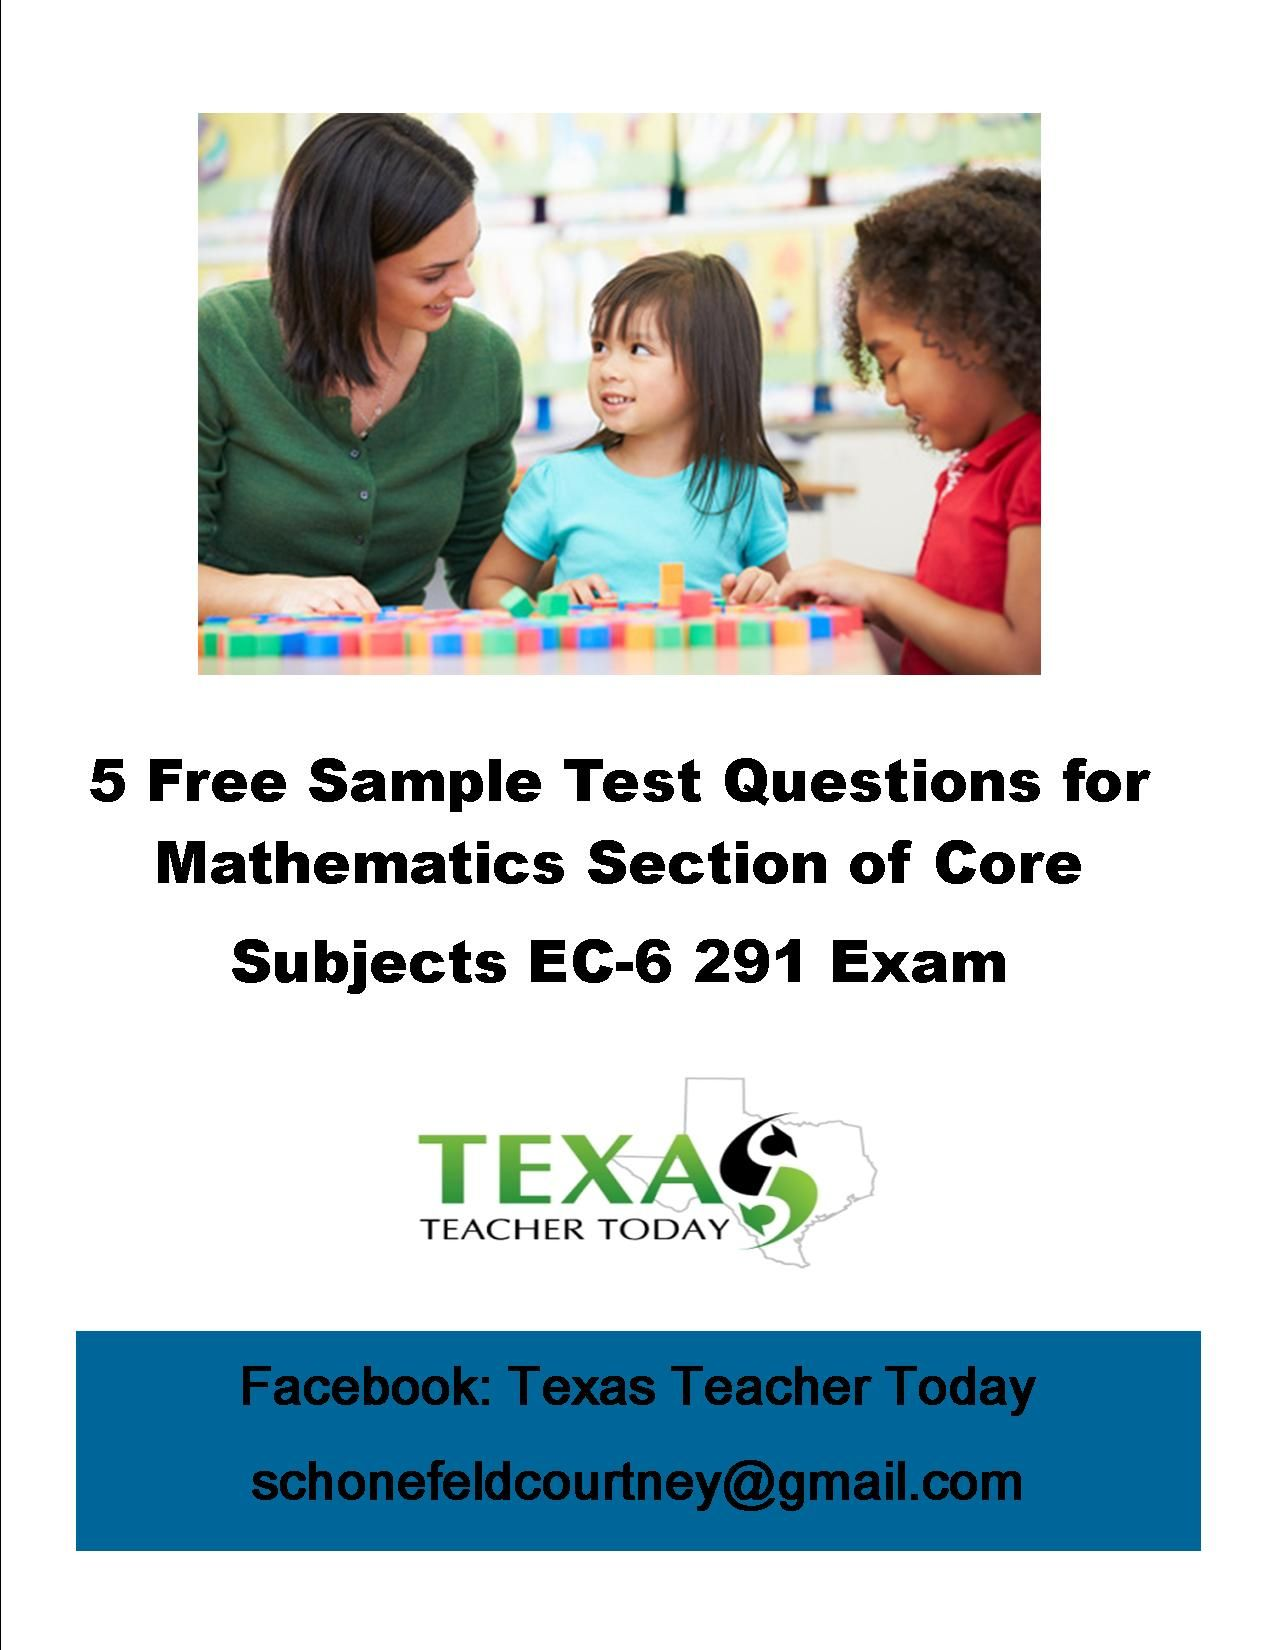 Five free sample test questions for the Mathematics section of the TExES  Core Subjects EC-6 291 exam!